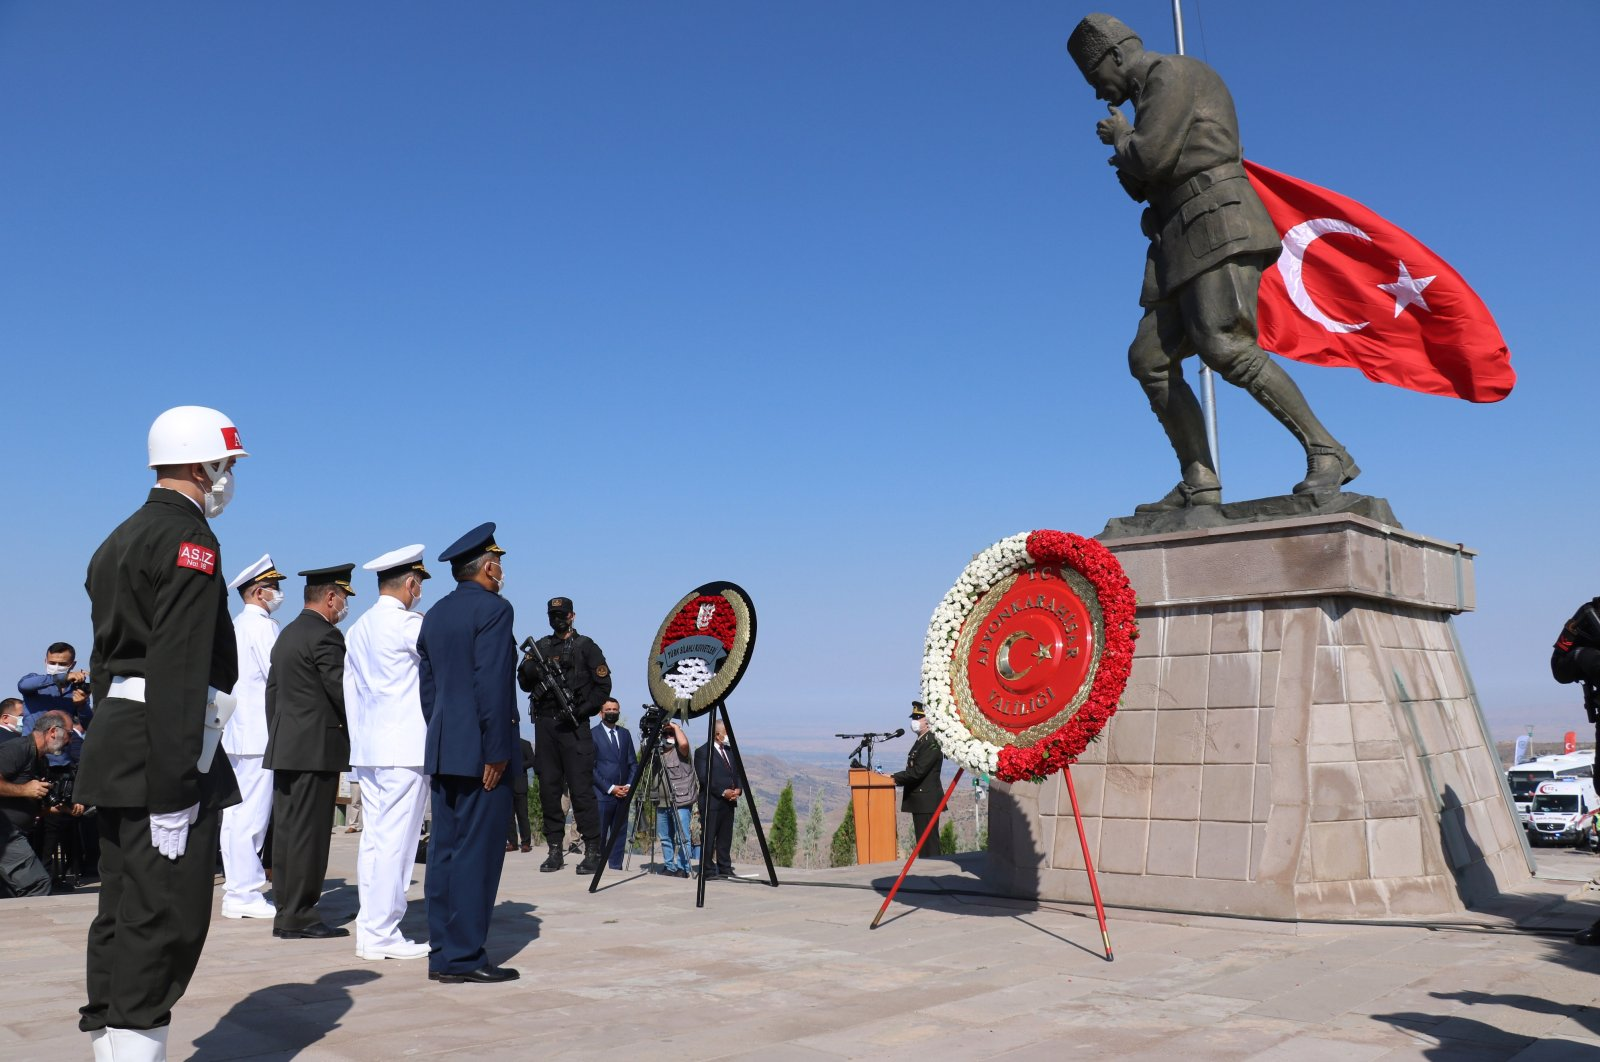 Soldiers attend a wreath-laying ceremony at a memorial for Atatürk, in Afyonkarahisar, western Turkey, Aug. 26, 2021. (DHA Photo)